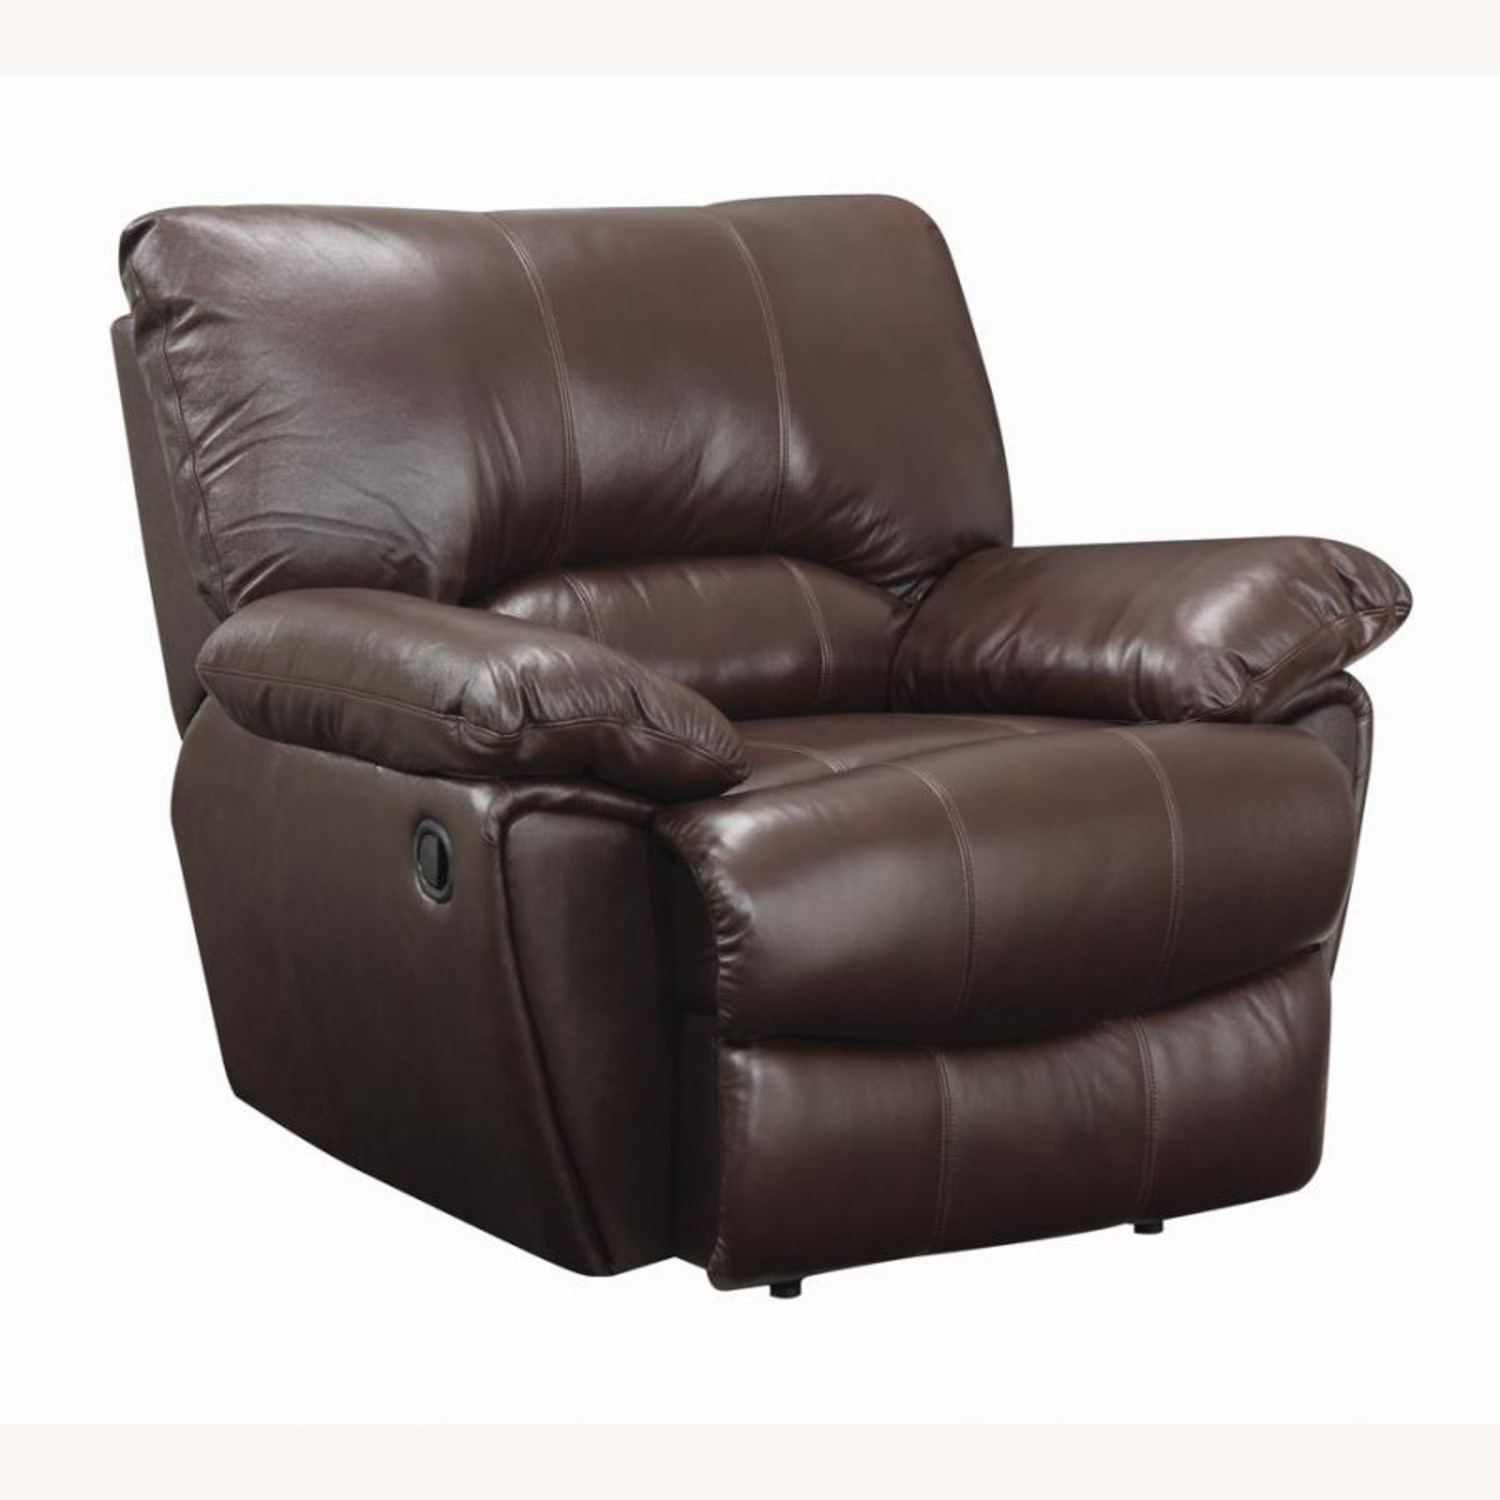 Recliner Chair In Chocolate Top Grain Leather - image-0